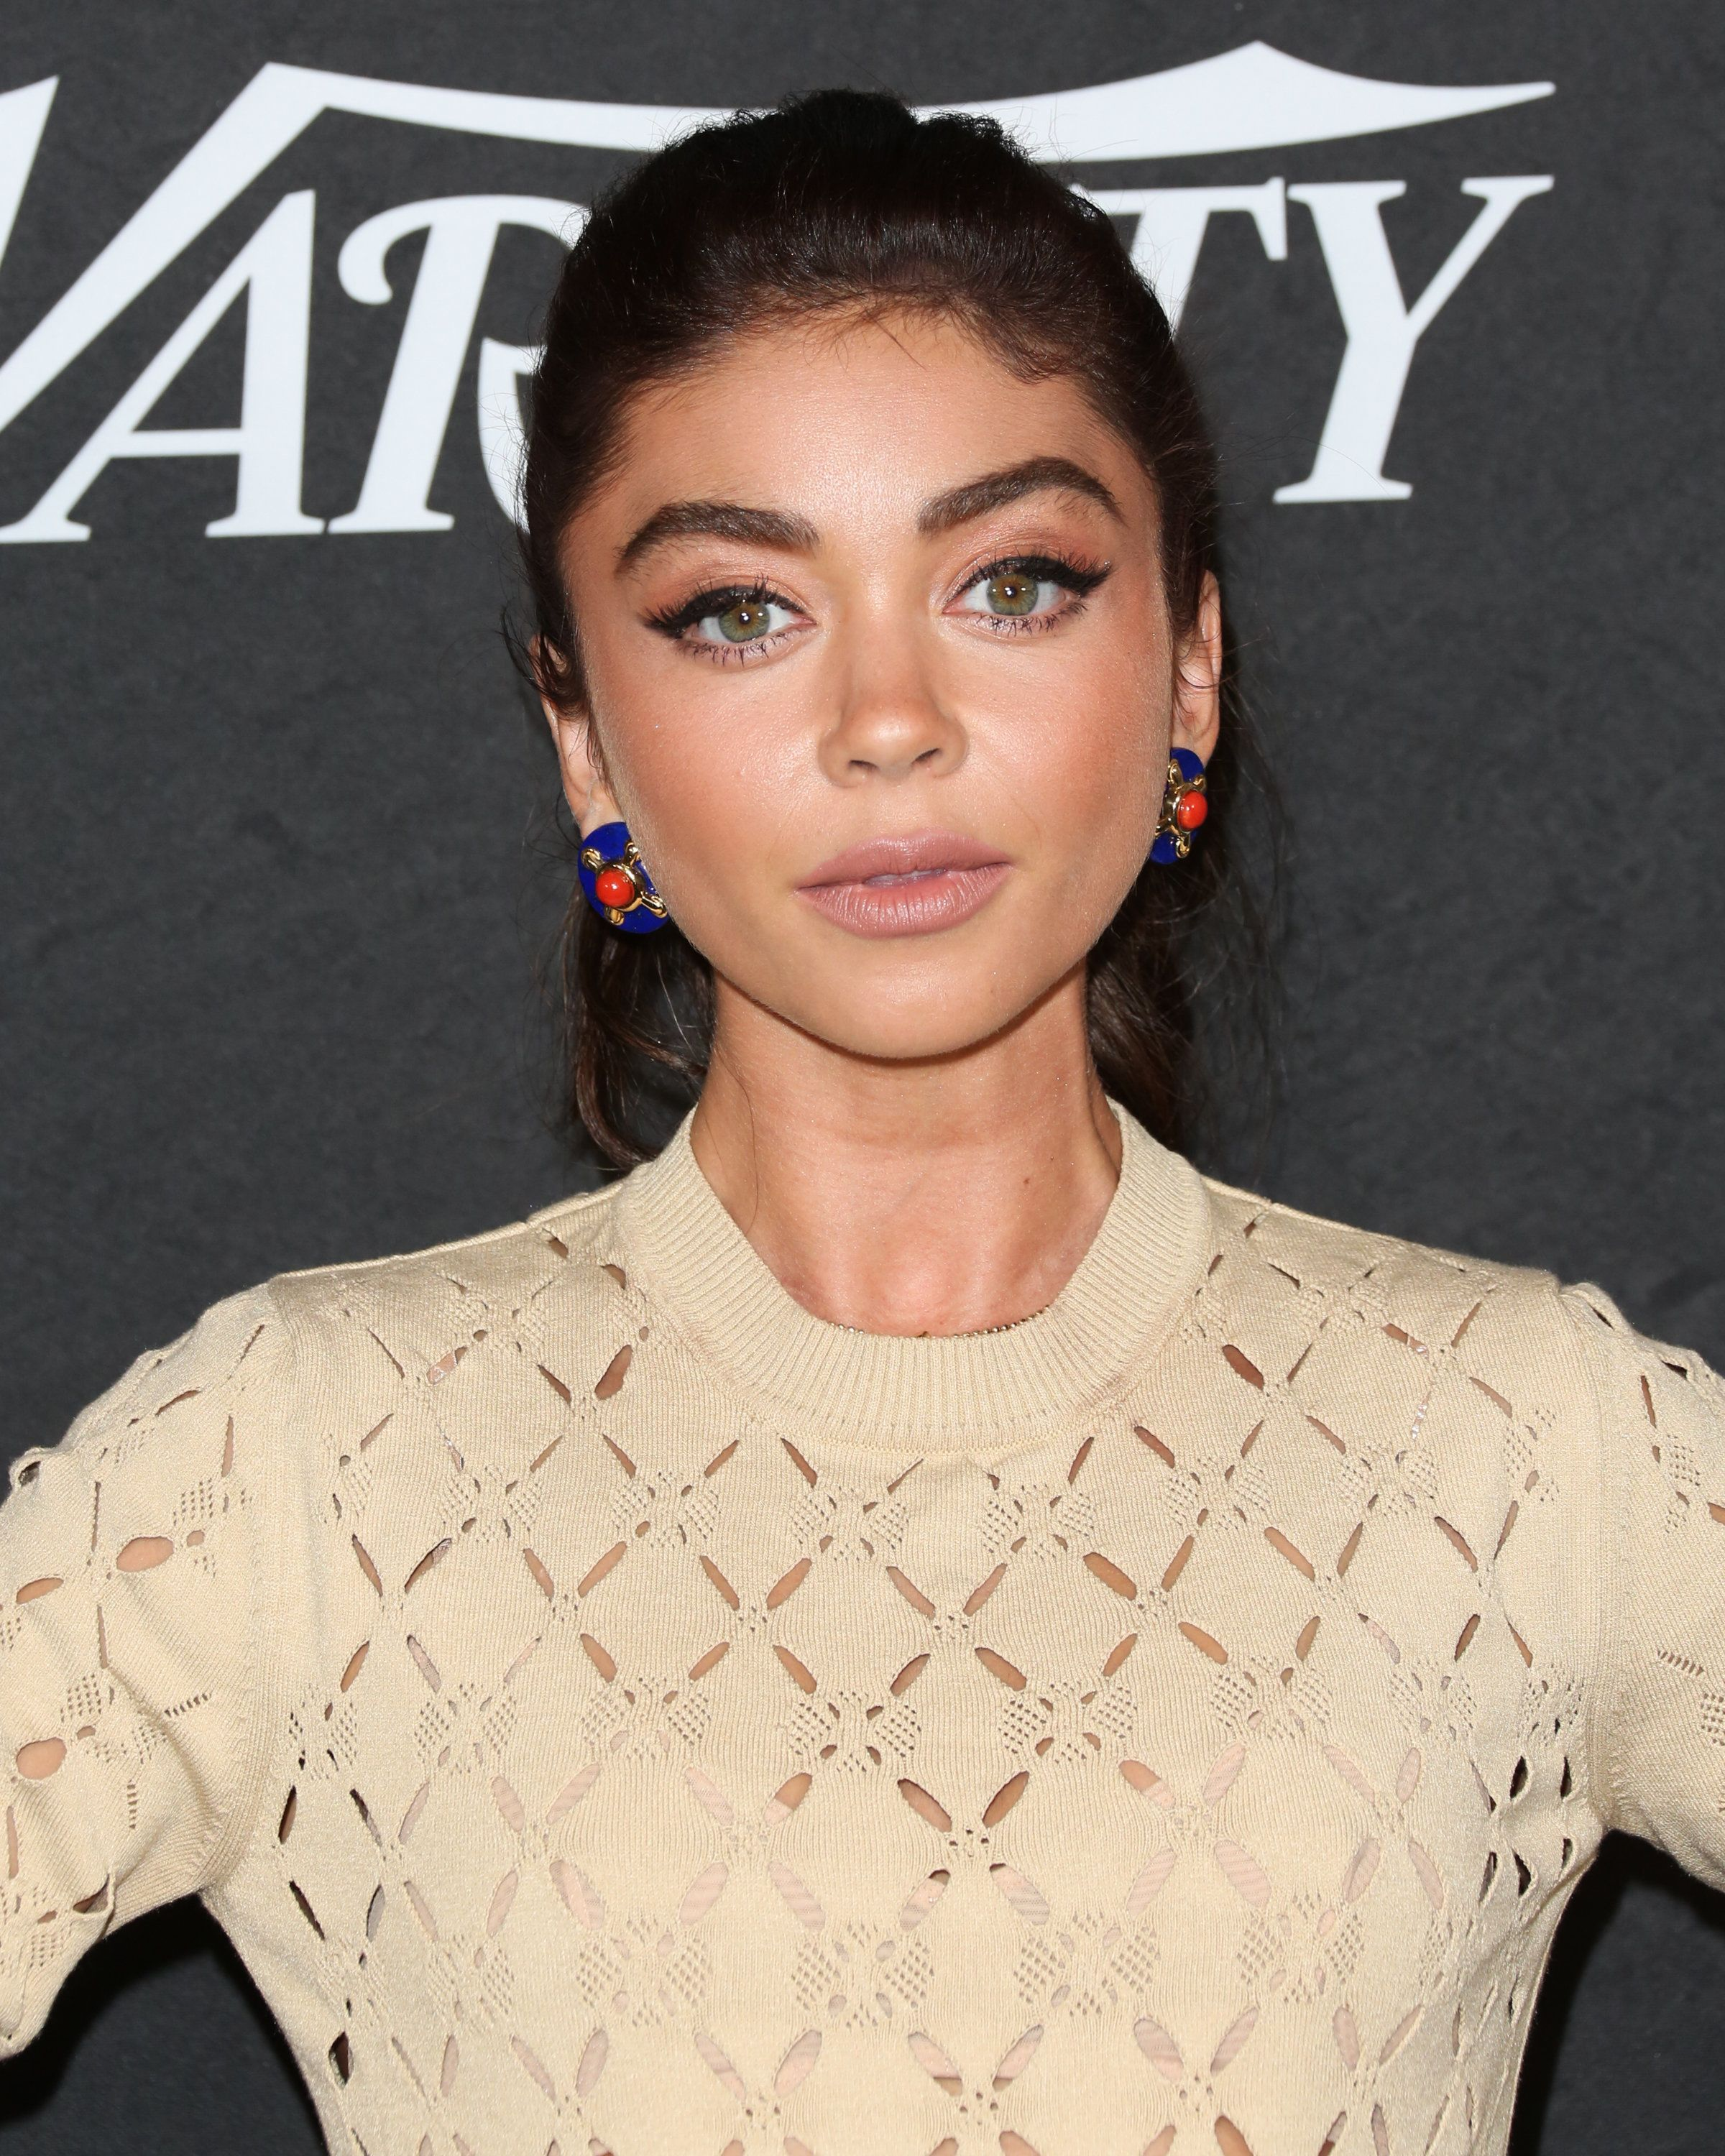 WEST HOLLYWOOD, CA - AUGUST 28:  Actress Sarah Hyland attends Variety's annual Power Of Young Hollywood at The Sunset Tower Hotel on August 28, 2018 in West Hollywood, California.  (Photo by Paul Archuleta/FilmMagic)